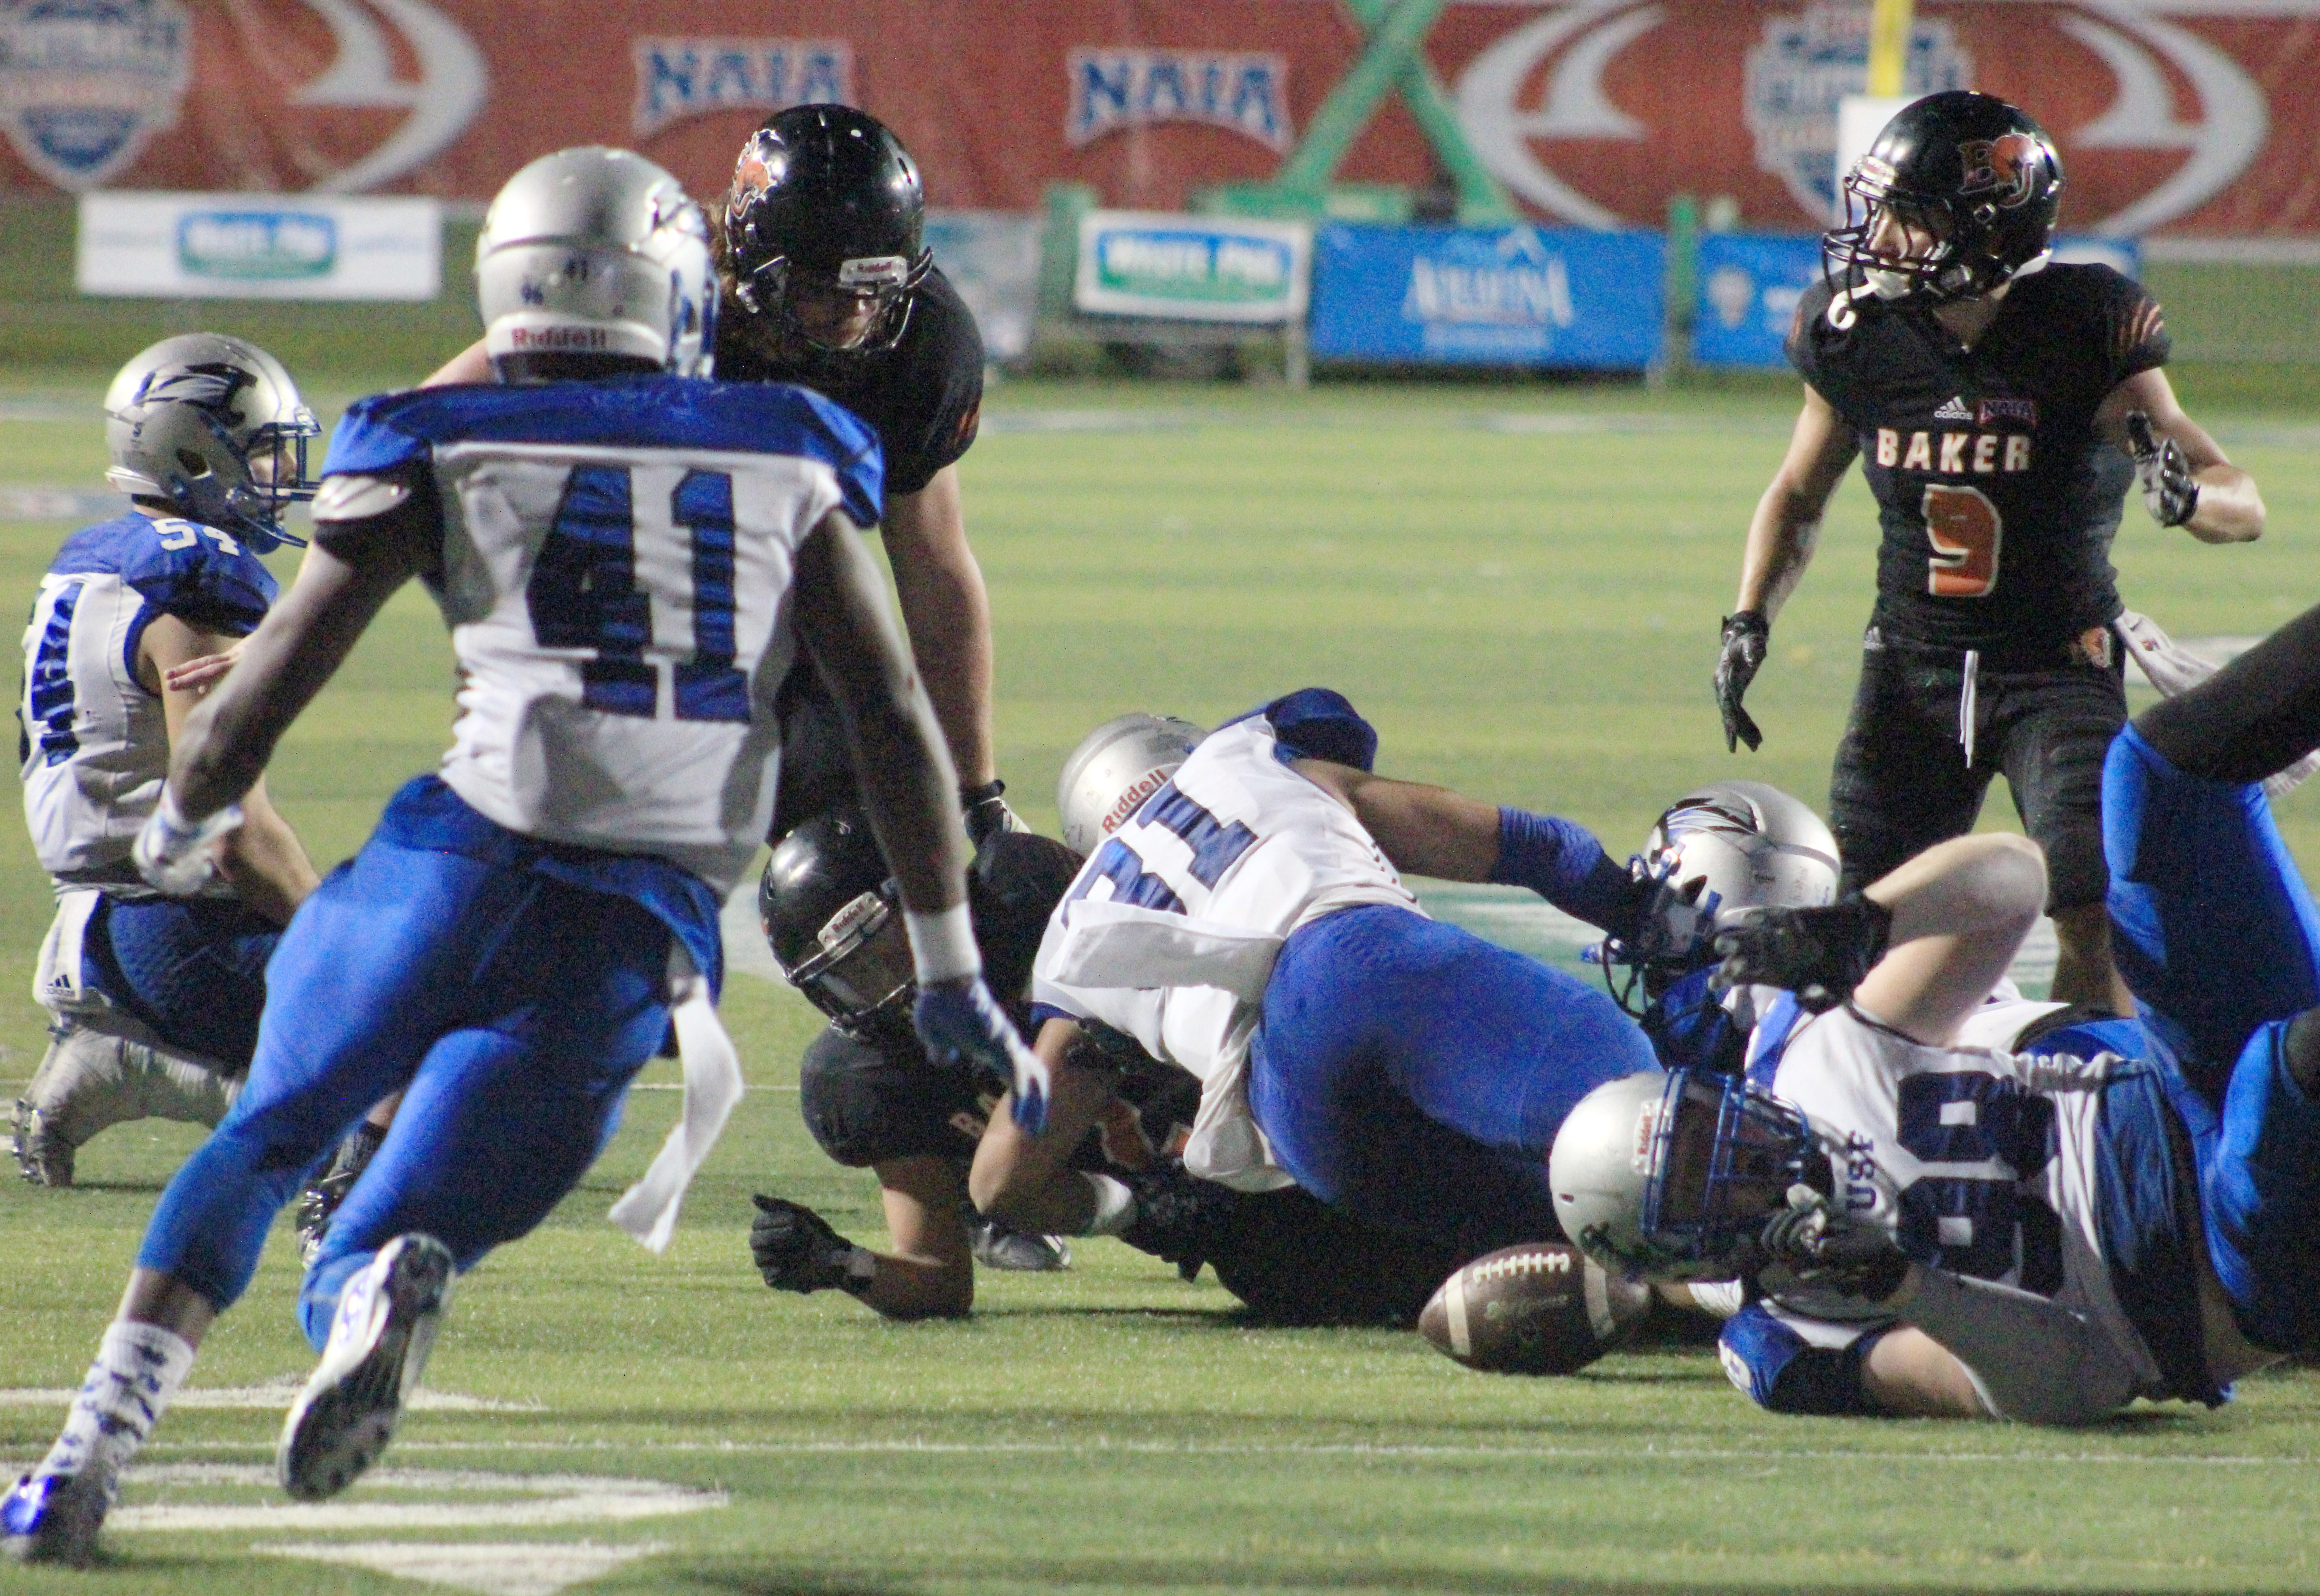 Saint Francis forces a Cornell Brown fumble in the fourth quarter of the national title game in Daytona Beach, Florida. The Cougars forced two Baker turnovers in their 38-17 win. Image by Shelby Stephens.